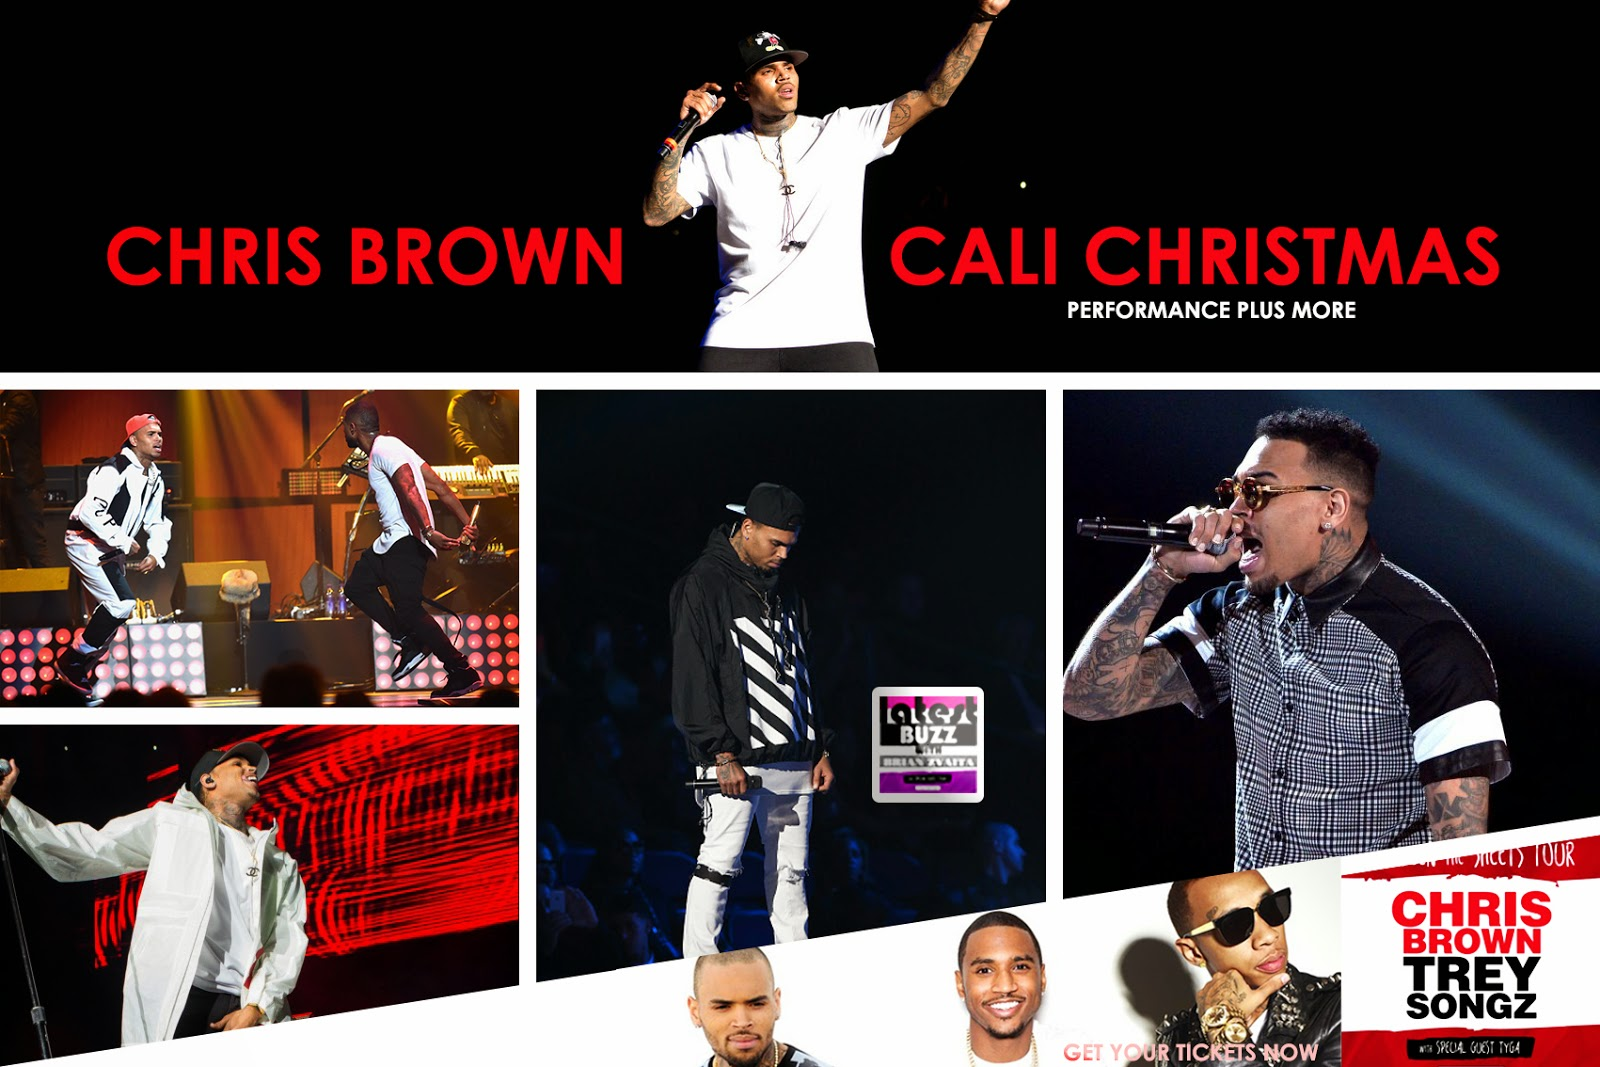 chris brown 2014 after jail performances chris cali chrismas performance